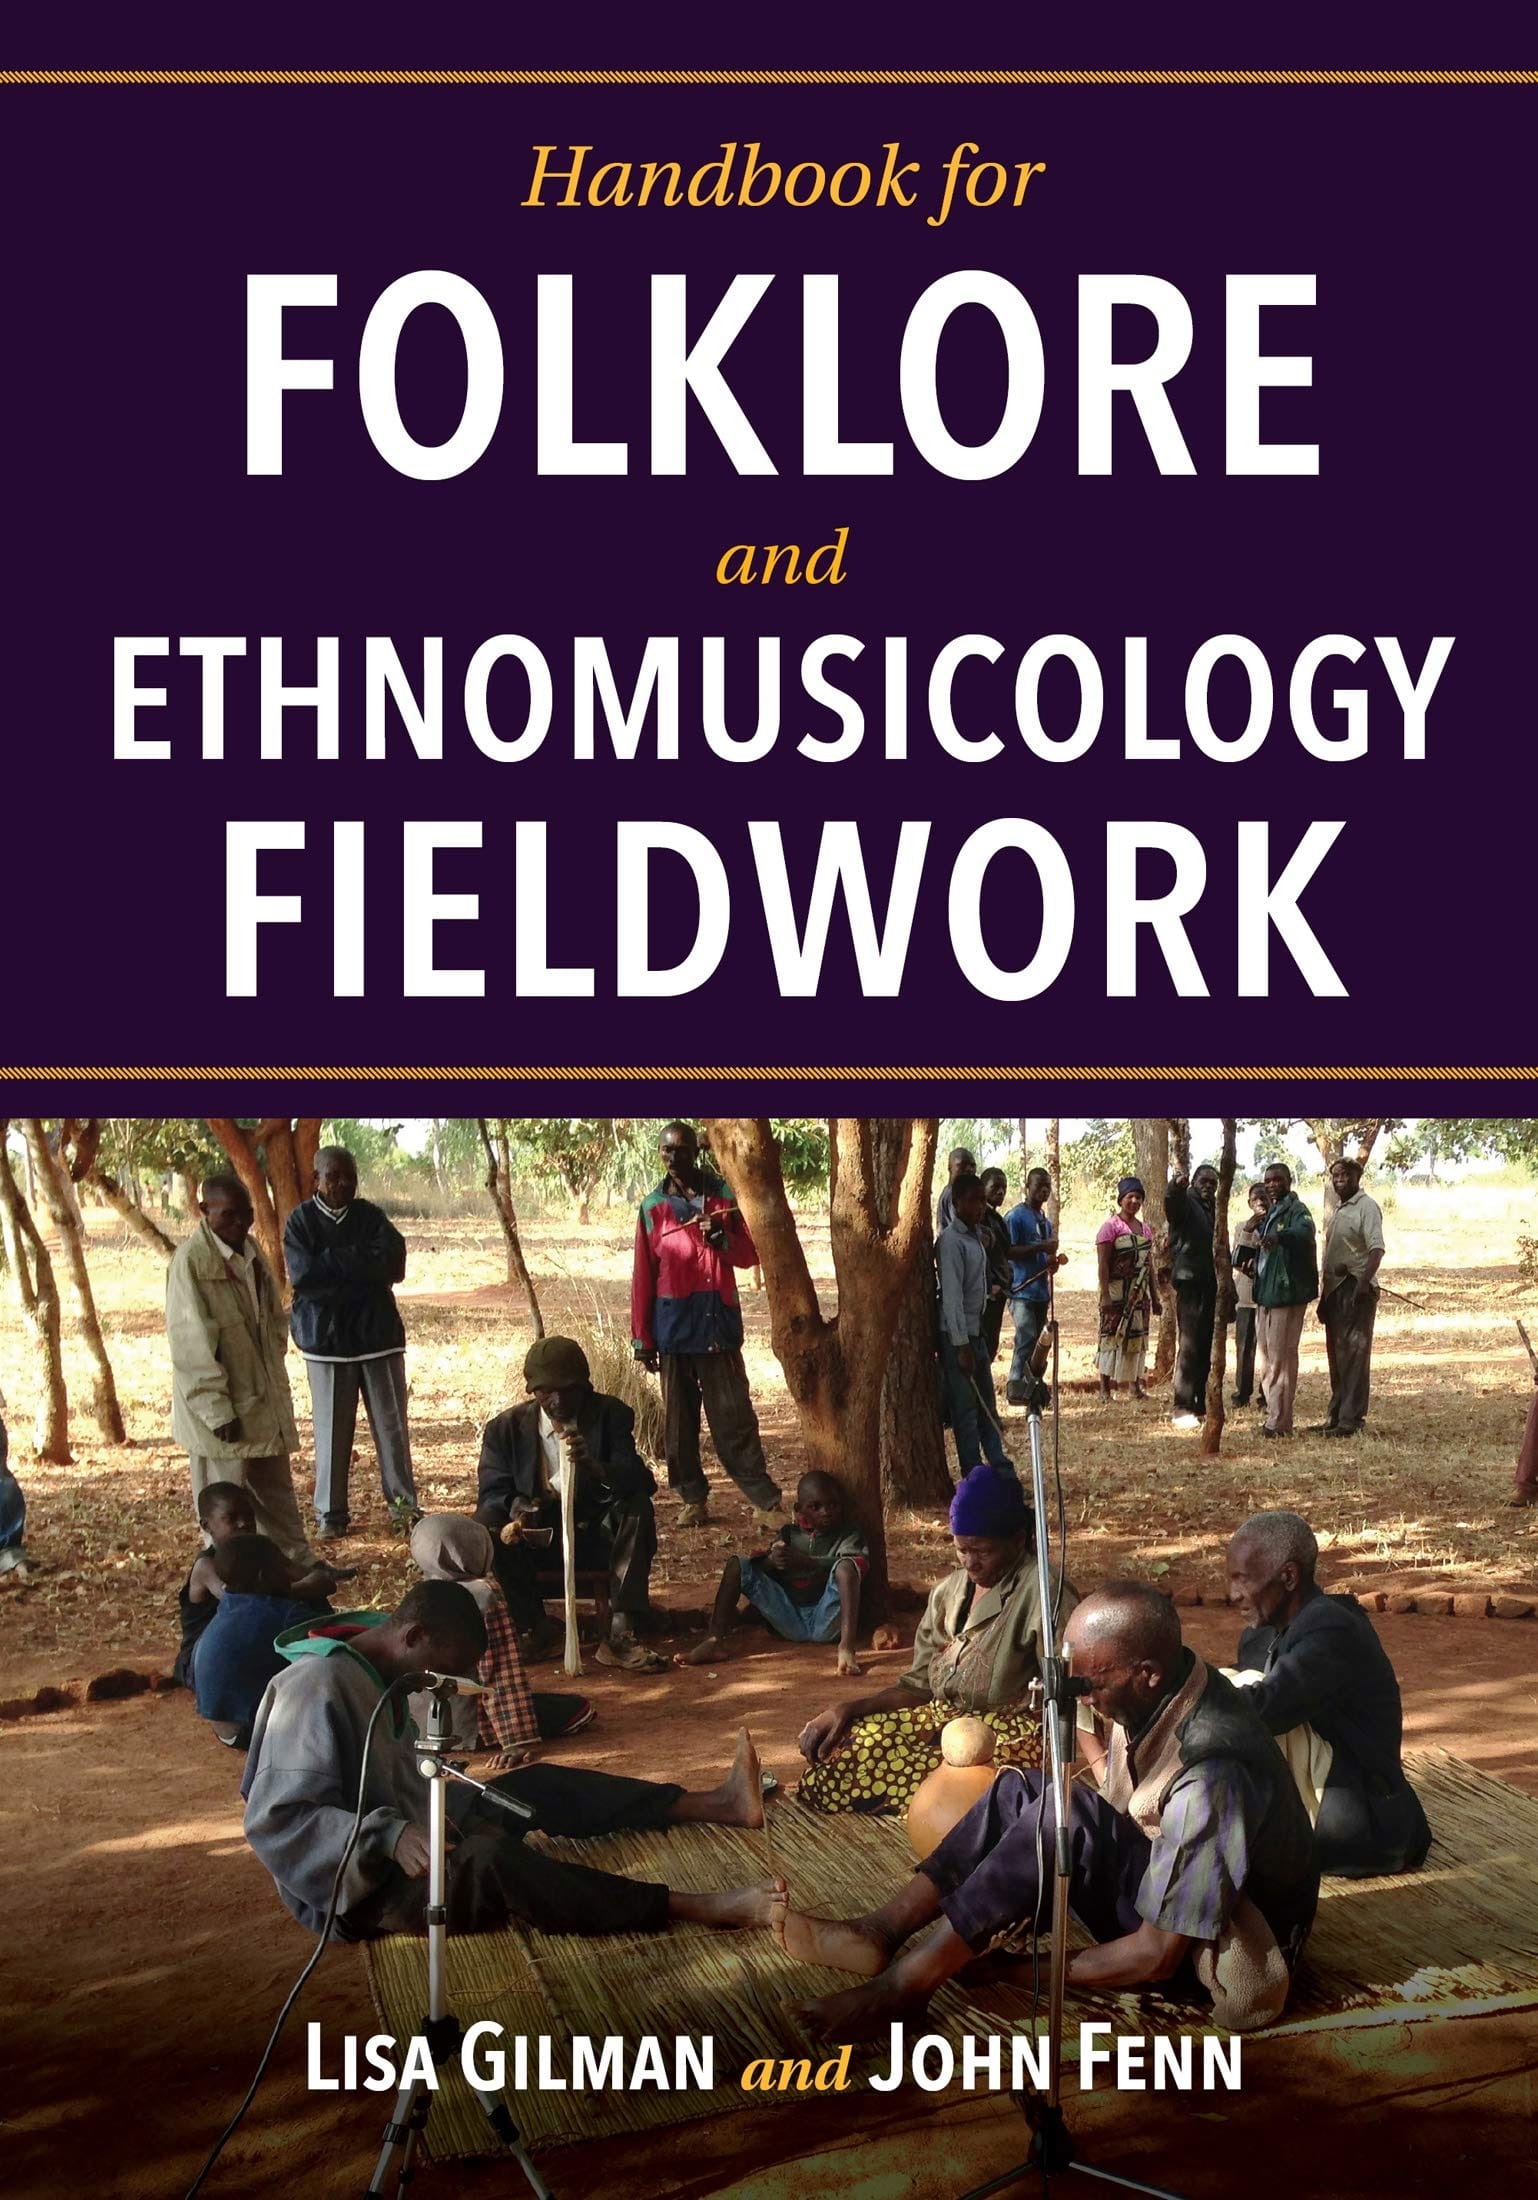 GILMAN Lisa / FENN John - Handbook for folklore and ethnomusicology Fieldwork - Livre - di-arezzo.co.uk